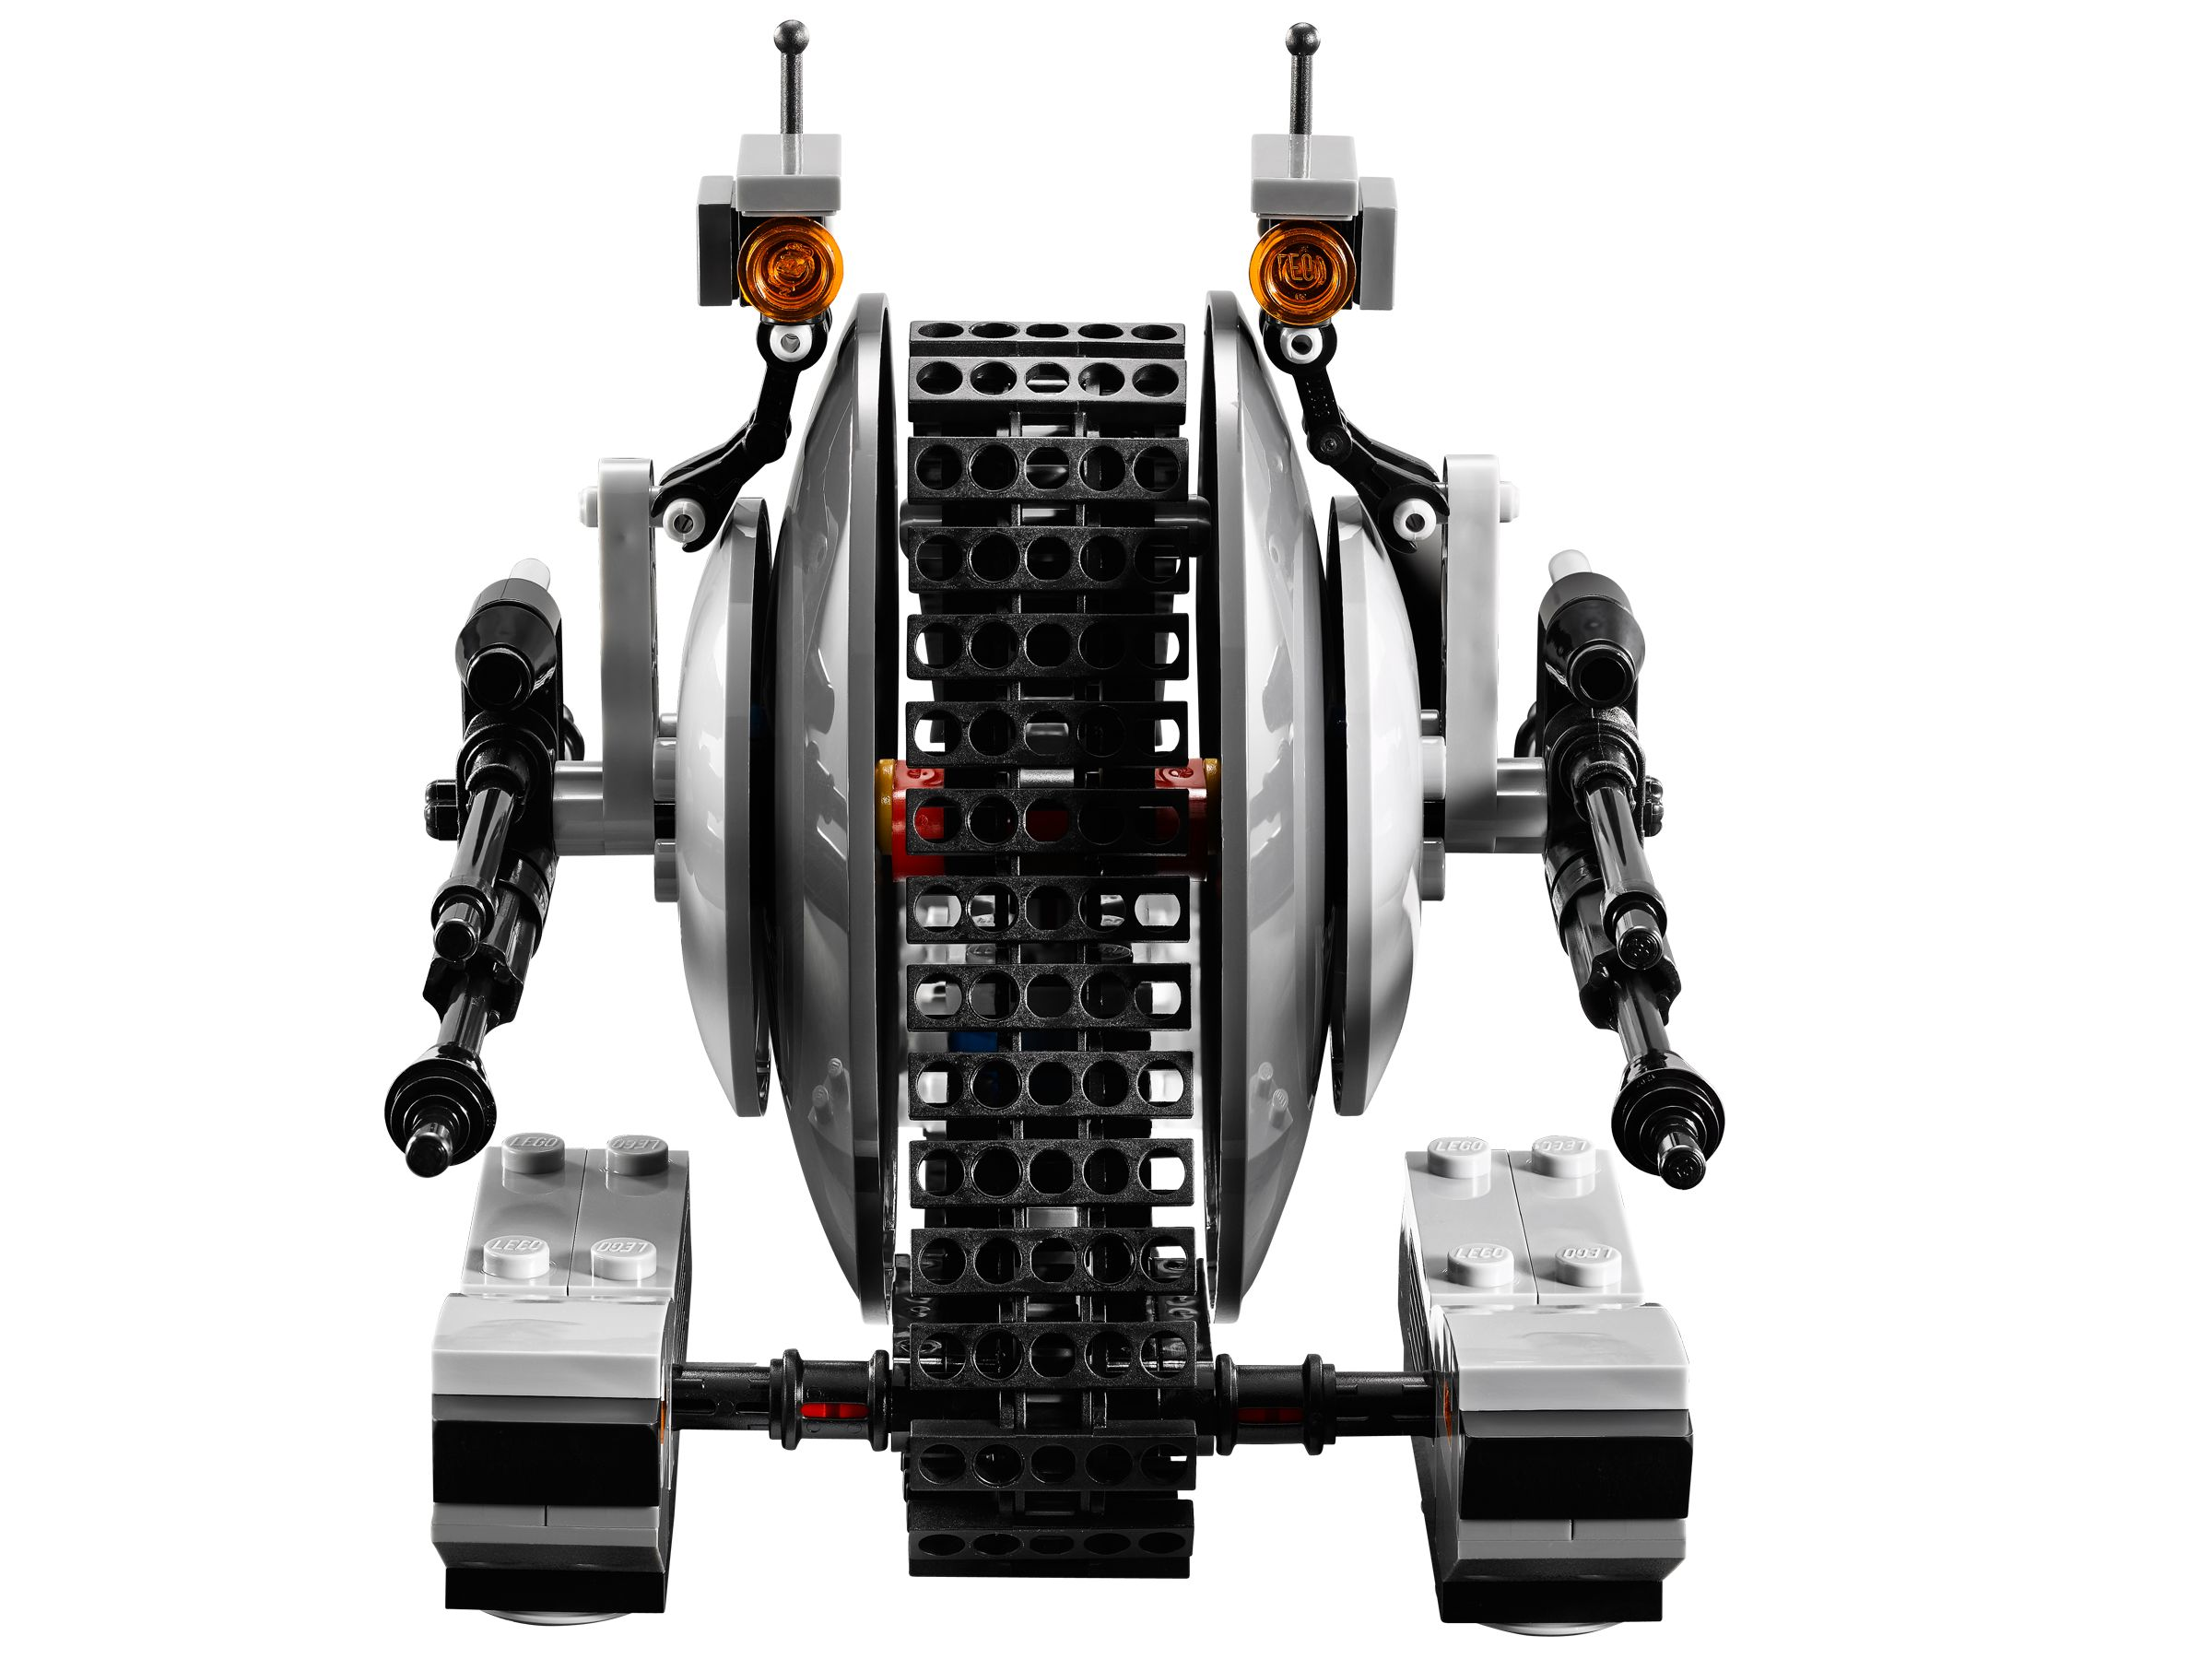 LEGO Star Wars 75015 Corporate Alliance Tank Droid™ LEGO_75015_alt3.jpg